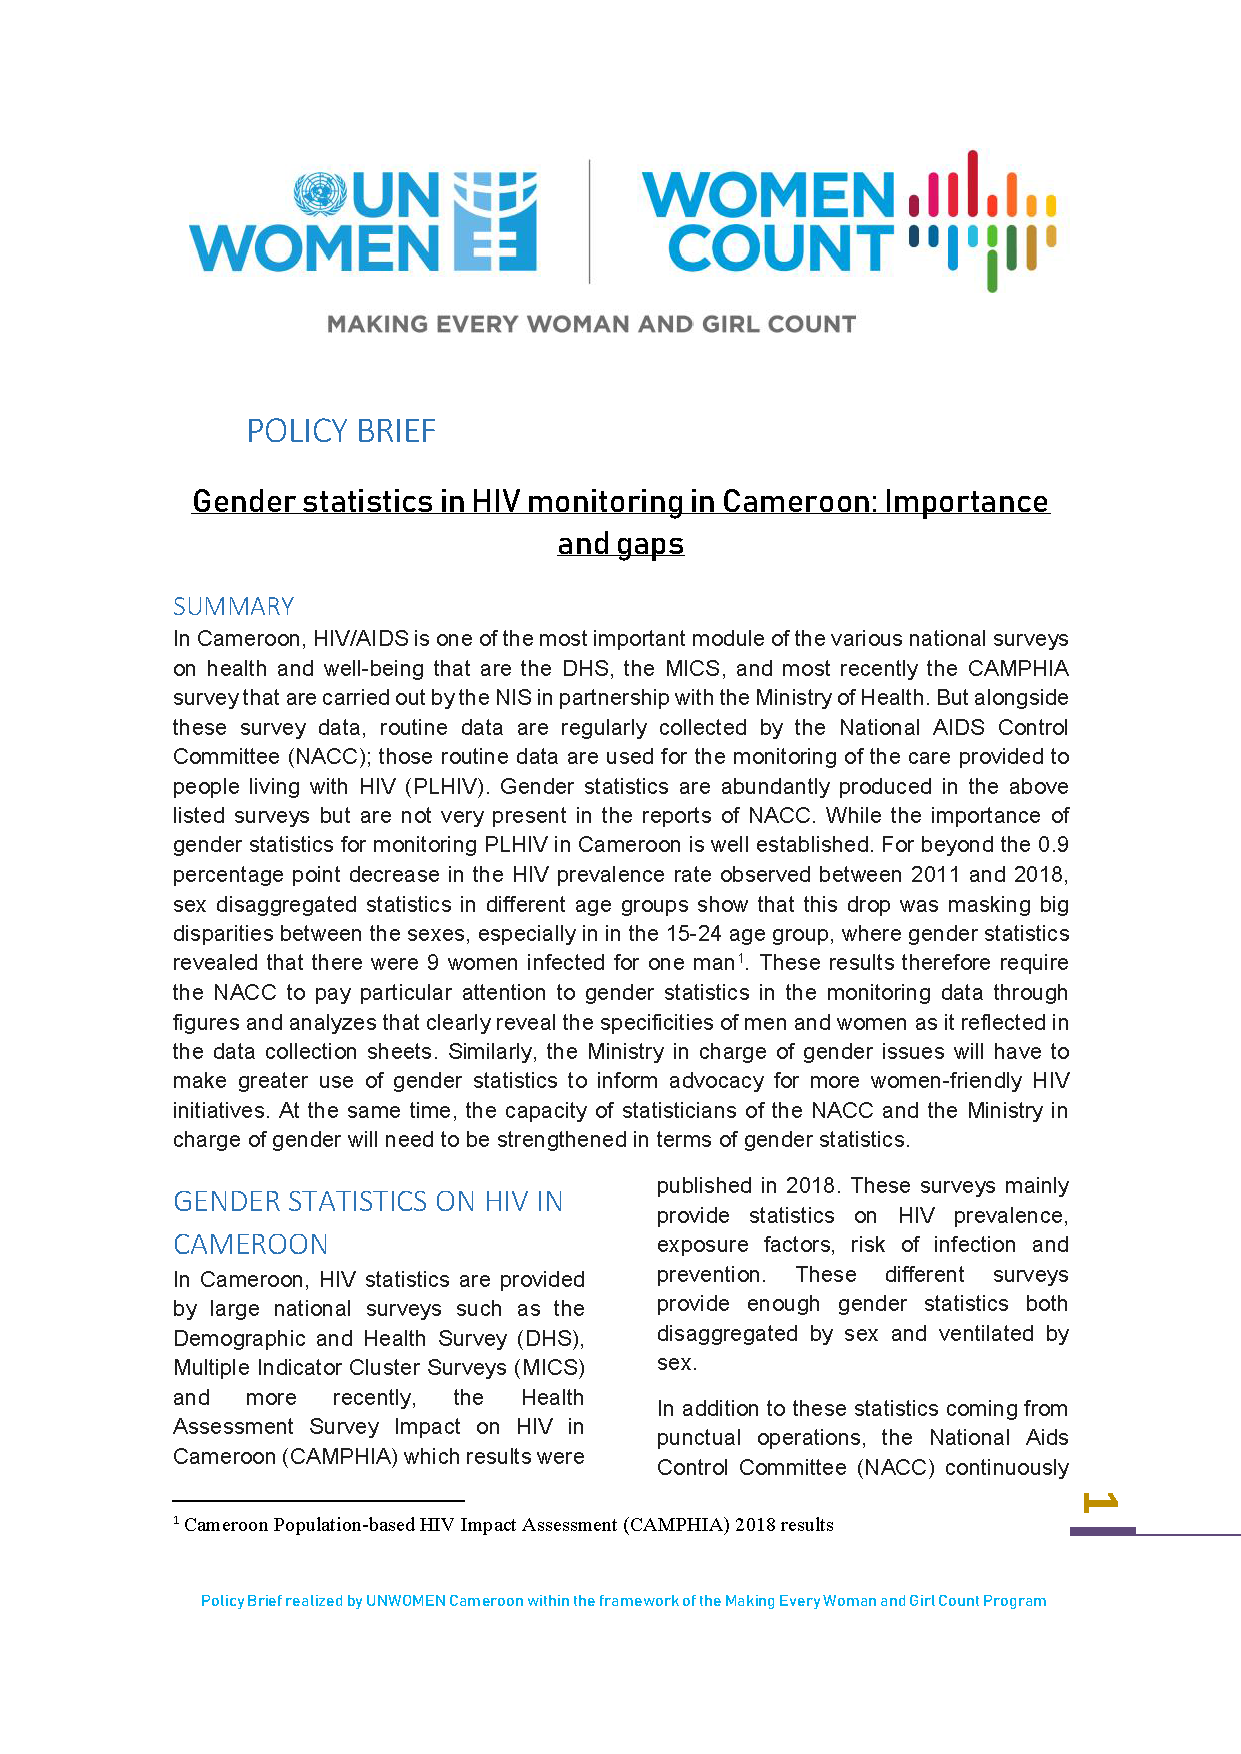 Cameroon HIV policy brief cover